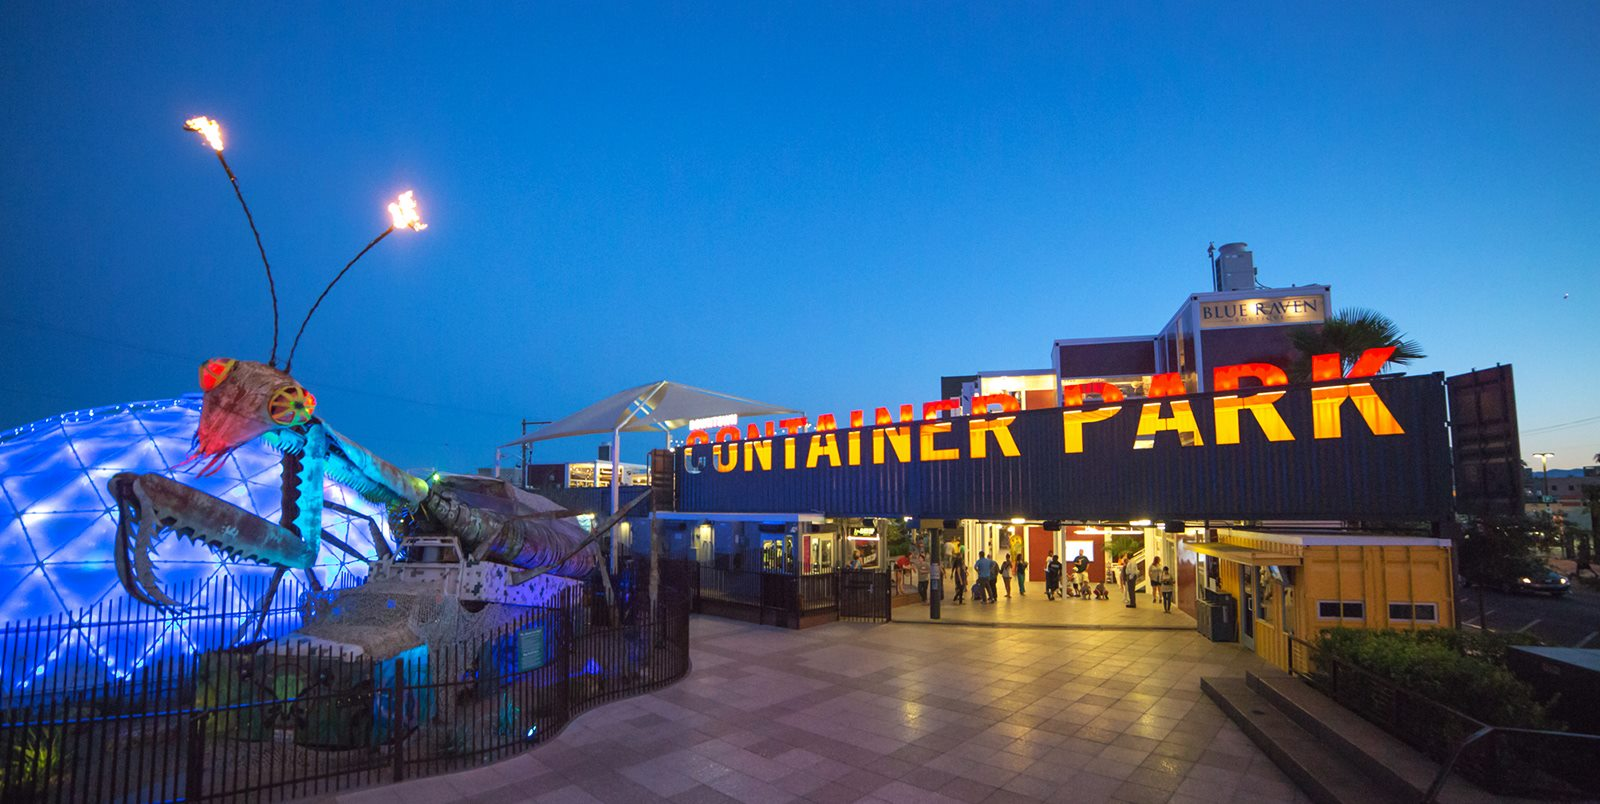 Las Vegas' Downtown Container Park features a Burning Man-inspired praying mantis that shoots fire while jamming out to classic rock tunes. Image courtesy of Downtown Container Park.